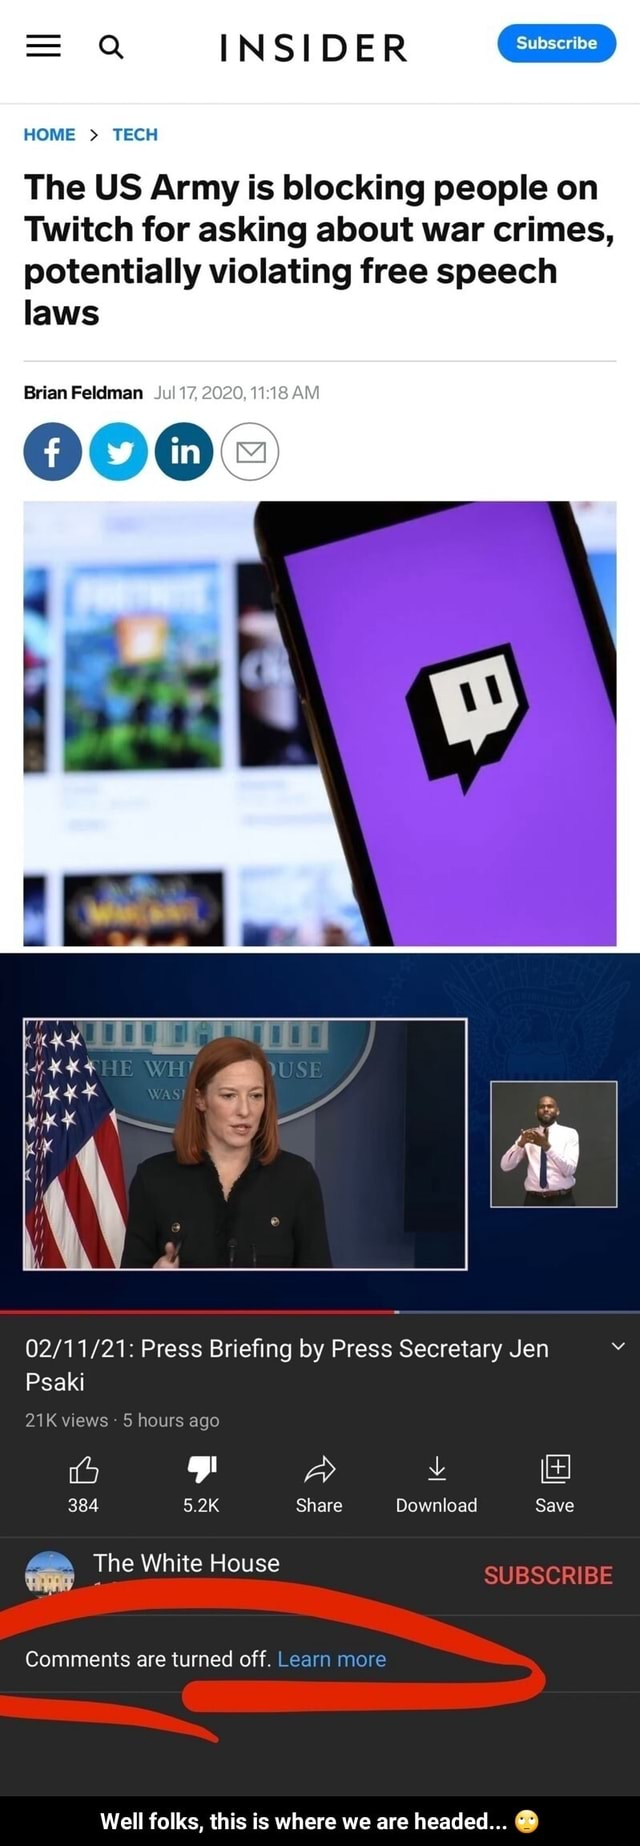 INSIDER HOME  TECH laws Brian Feldman Ju The US Army is blocking people on Twitch for asking about war crimes, potentially violating free speech Press Briefing by Press Secretary Jen Psaki views 5 hours ago FF A 384 5.2K Share Download Save The White House Comments are turned off. Learn more Well folks, this is where we are headed   Well folks, this is where we are headed  memes